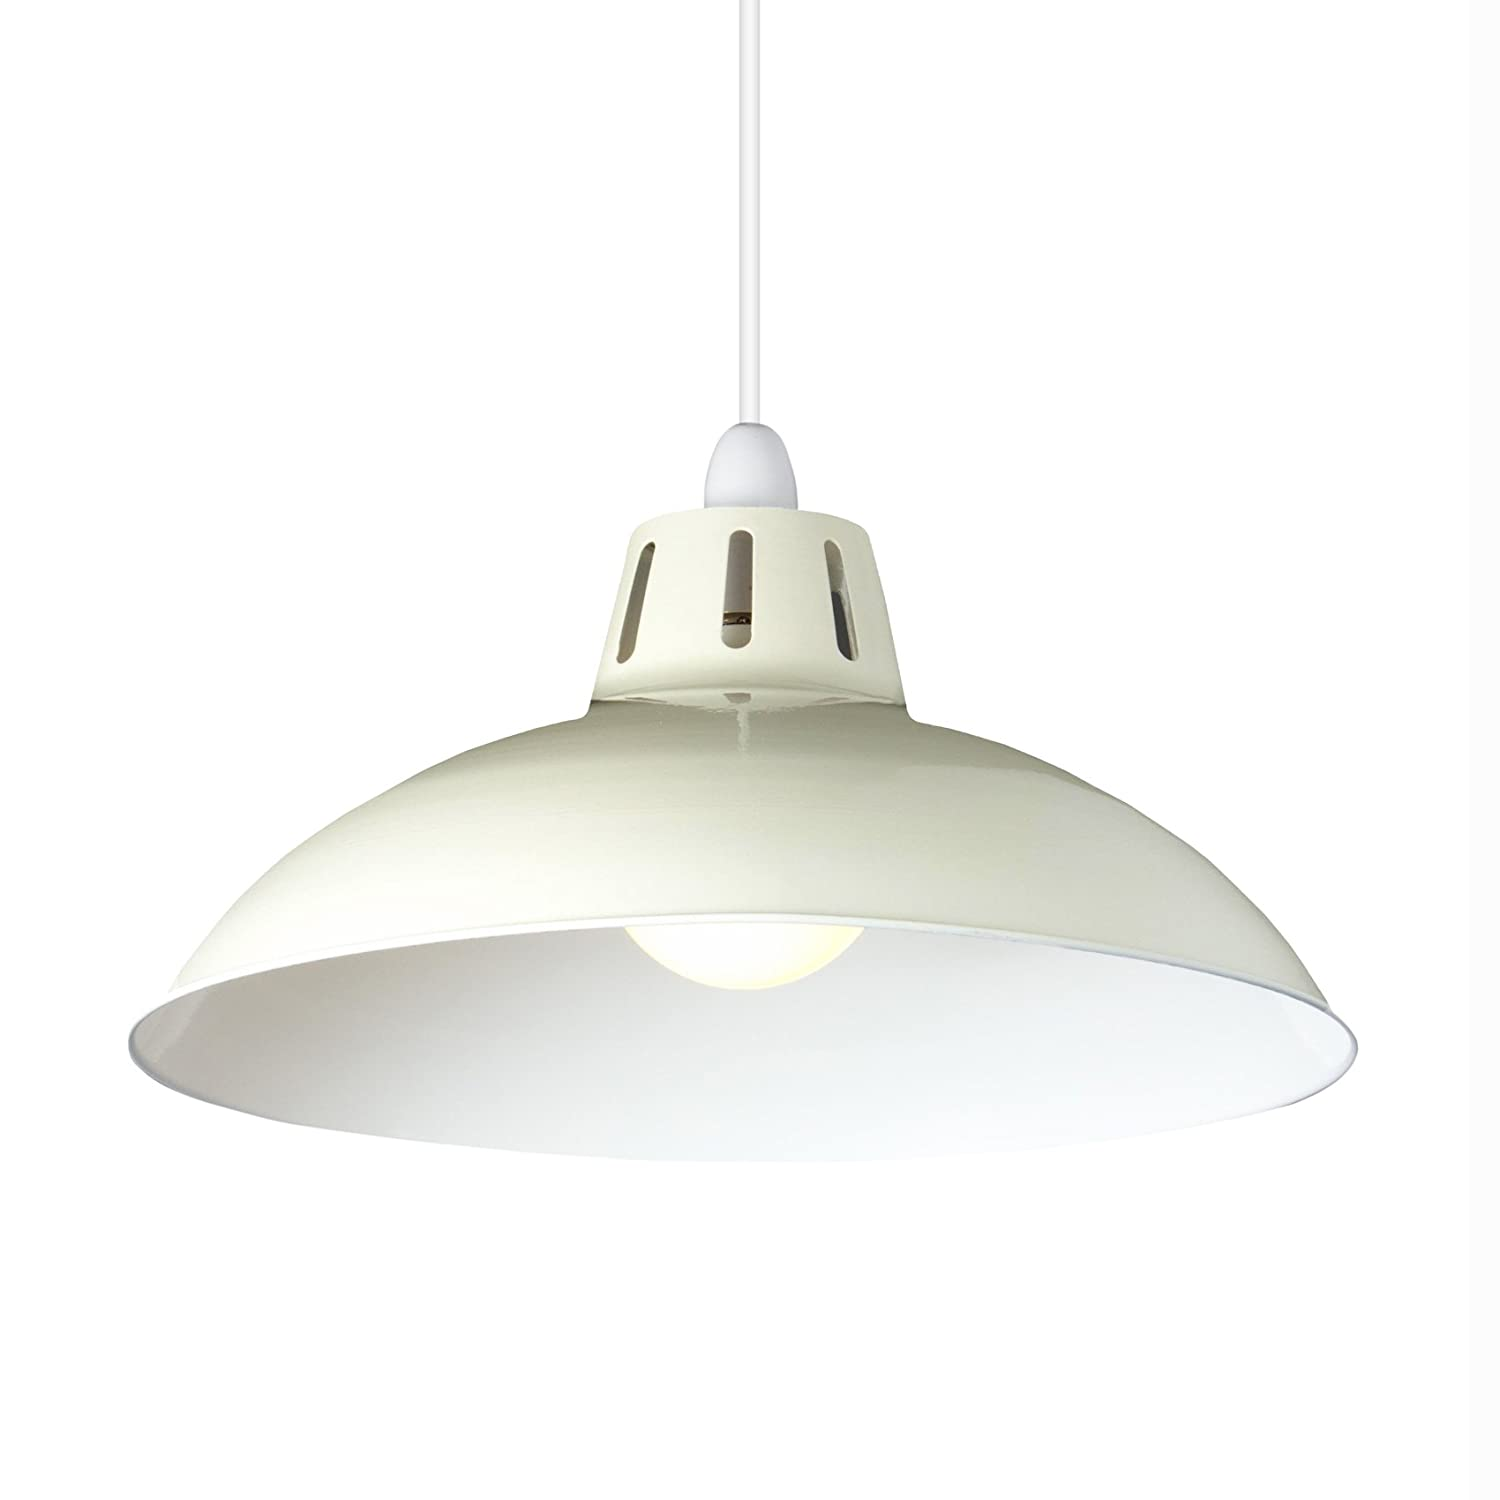 Large cut out dome metal lighting pendant shades cream - Large Modern Cut Out Dome Glossy Metal Ceiling Light Fitting Pendant Shade Cream Amazon Co Uk Lighting